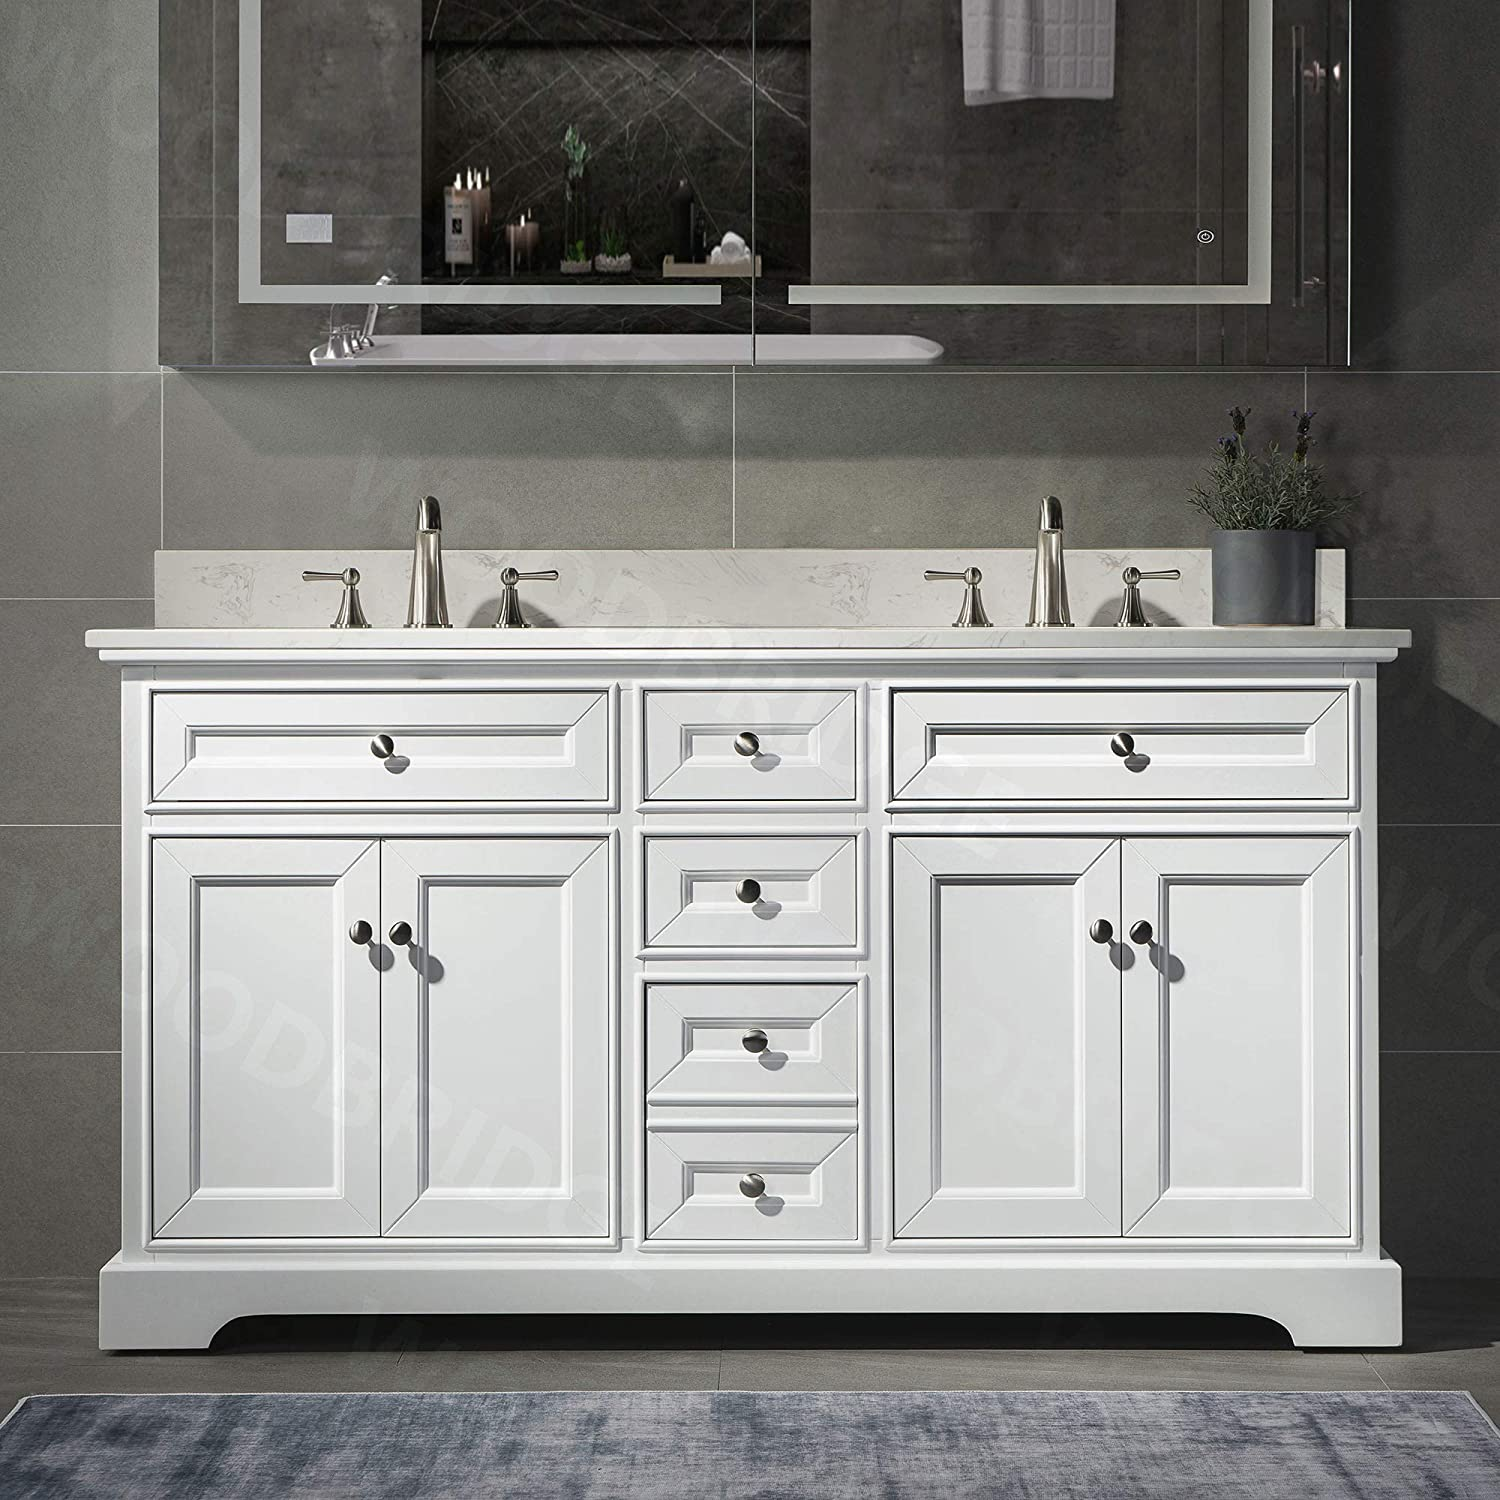 London 60 Bathroom Vanity With Engineered Quartz White Carrara Color Top 8 Faucet Holes Double Rectangle Undermount Sinks 4 Soft Closing Doors And 3 Full Extension Dovetail Drawers White Vanity Color Amazon Com